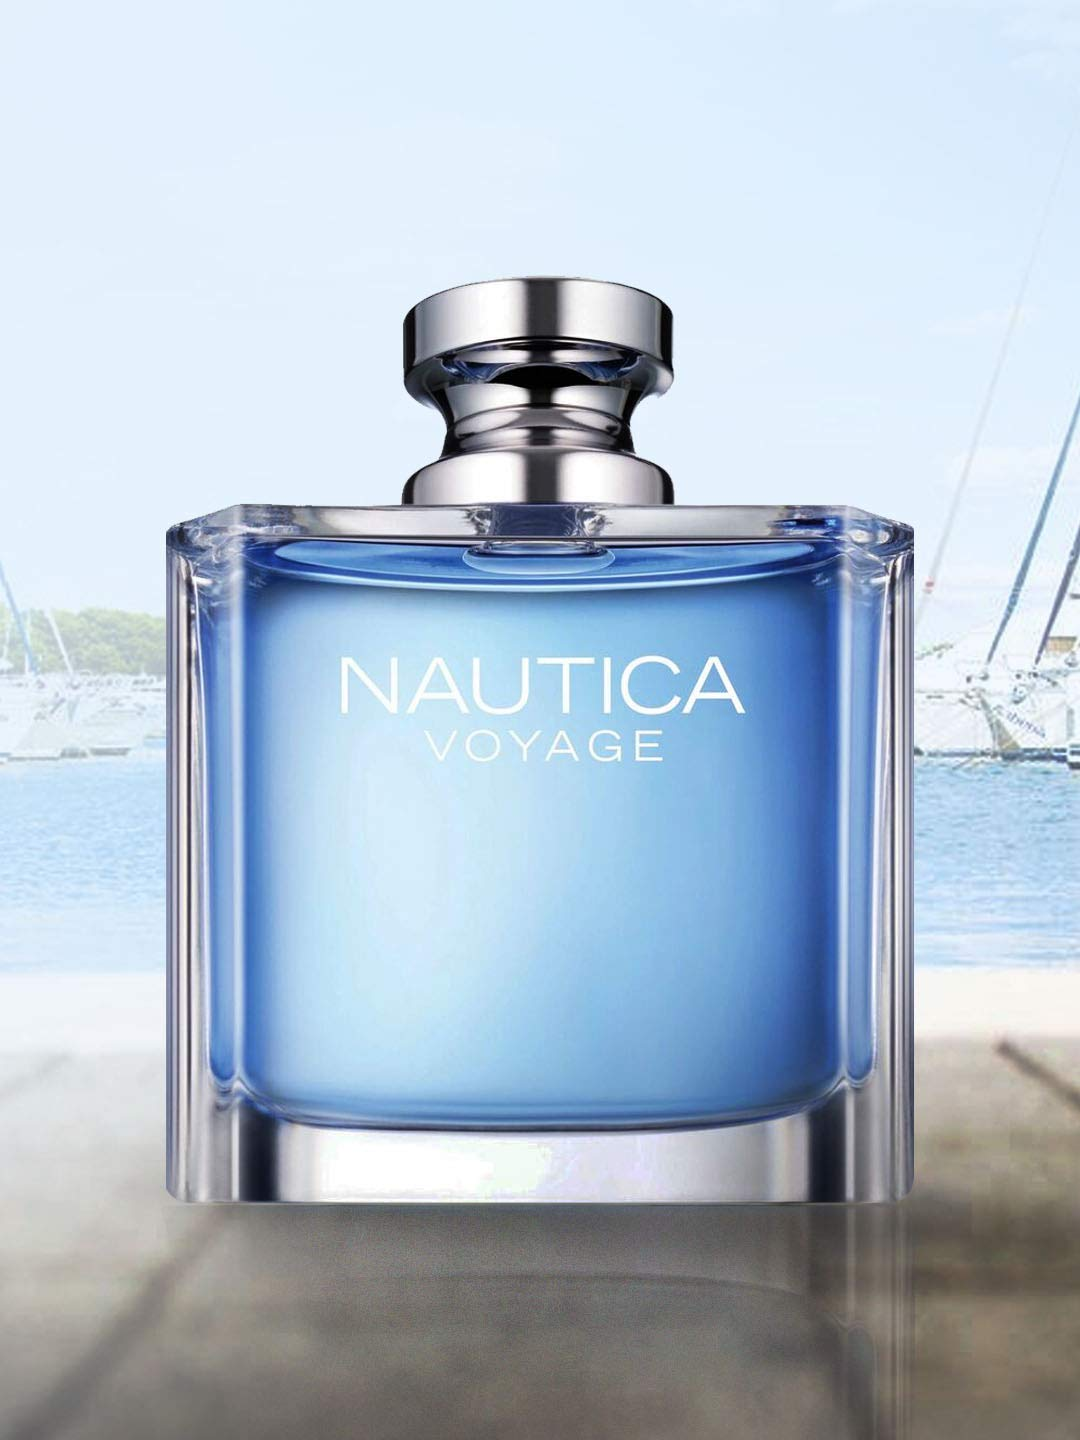 Nautica Voyage By Nautica For Men. Eau De Toilette Spray 3.4 Fl Oz by Nautica